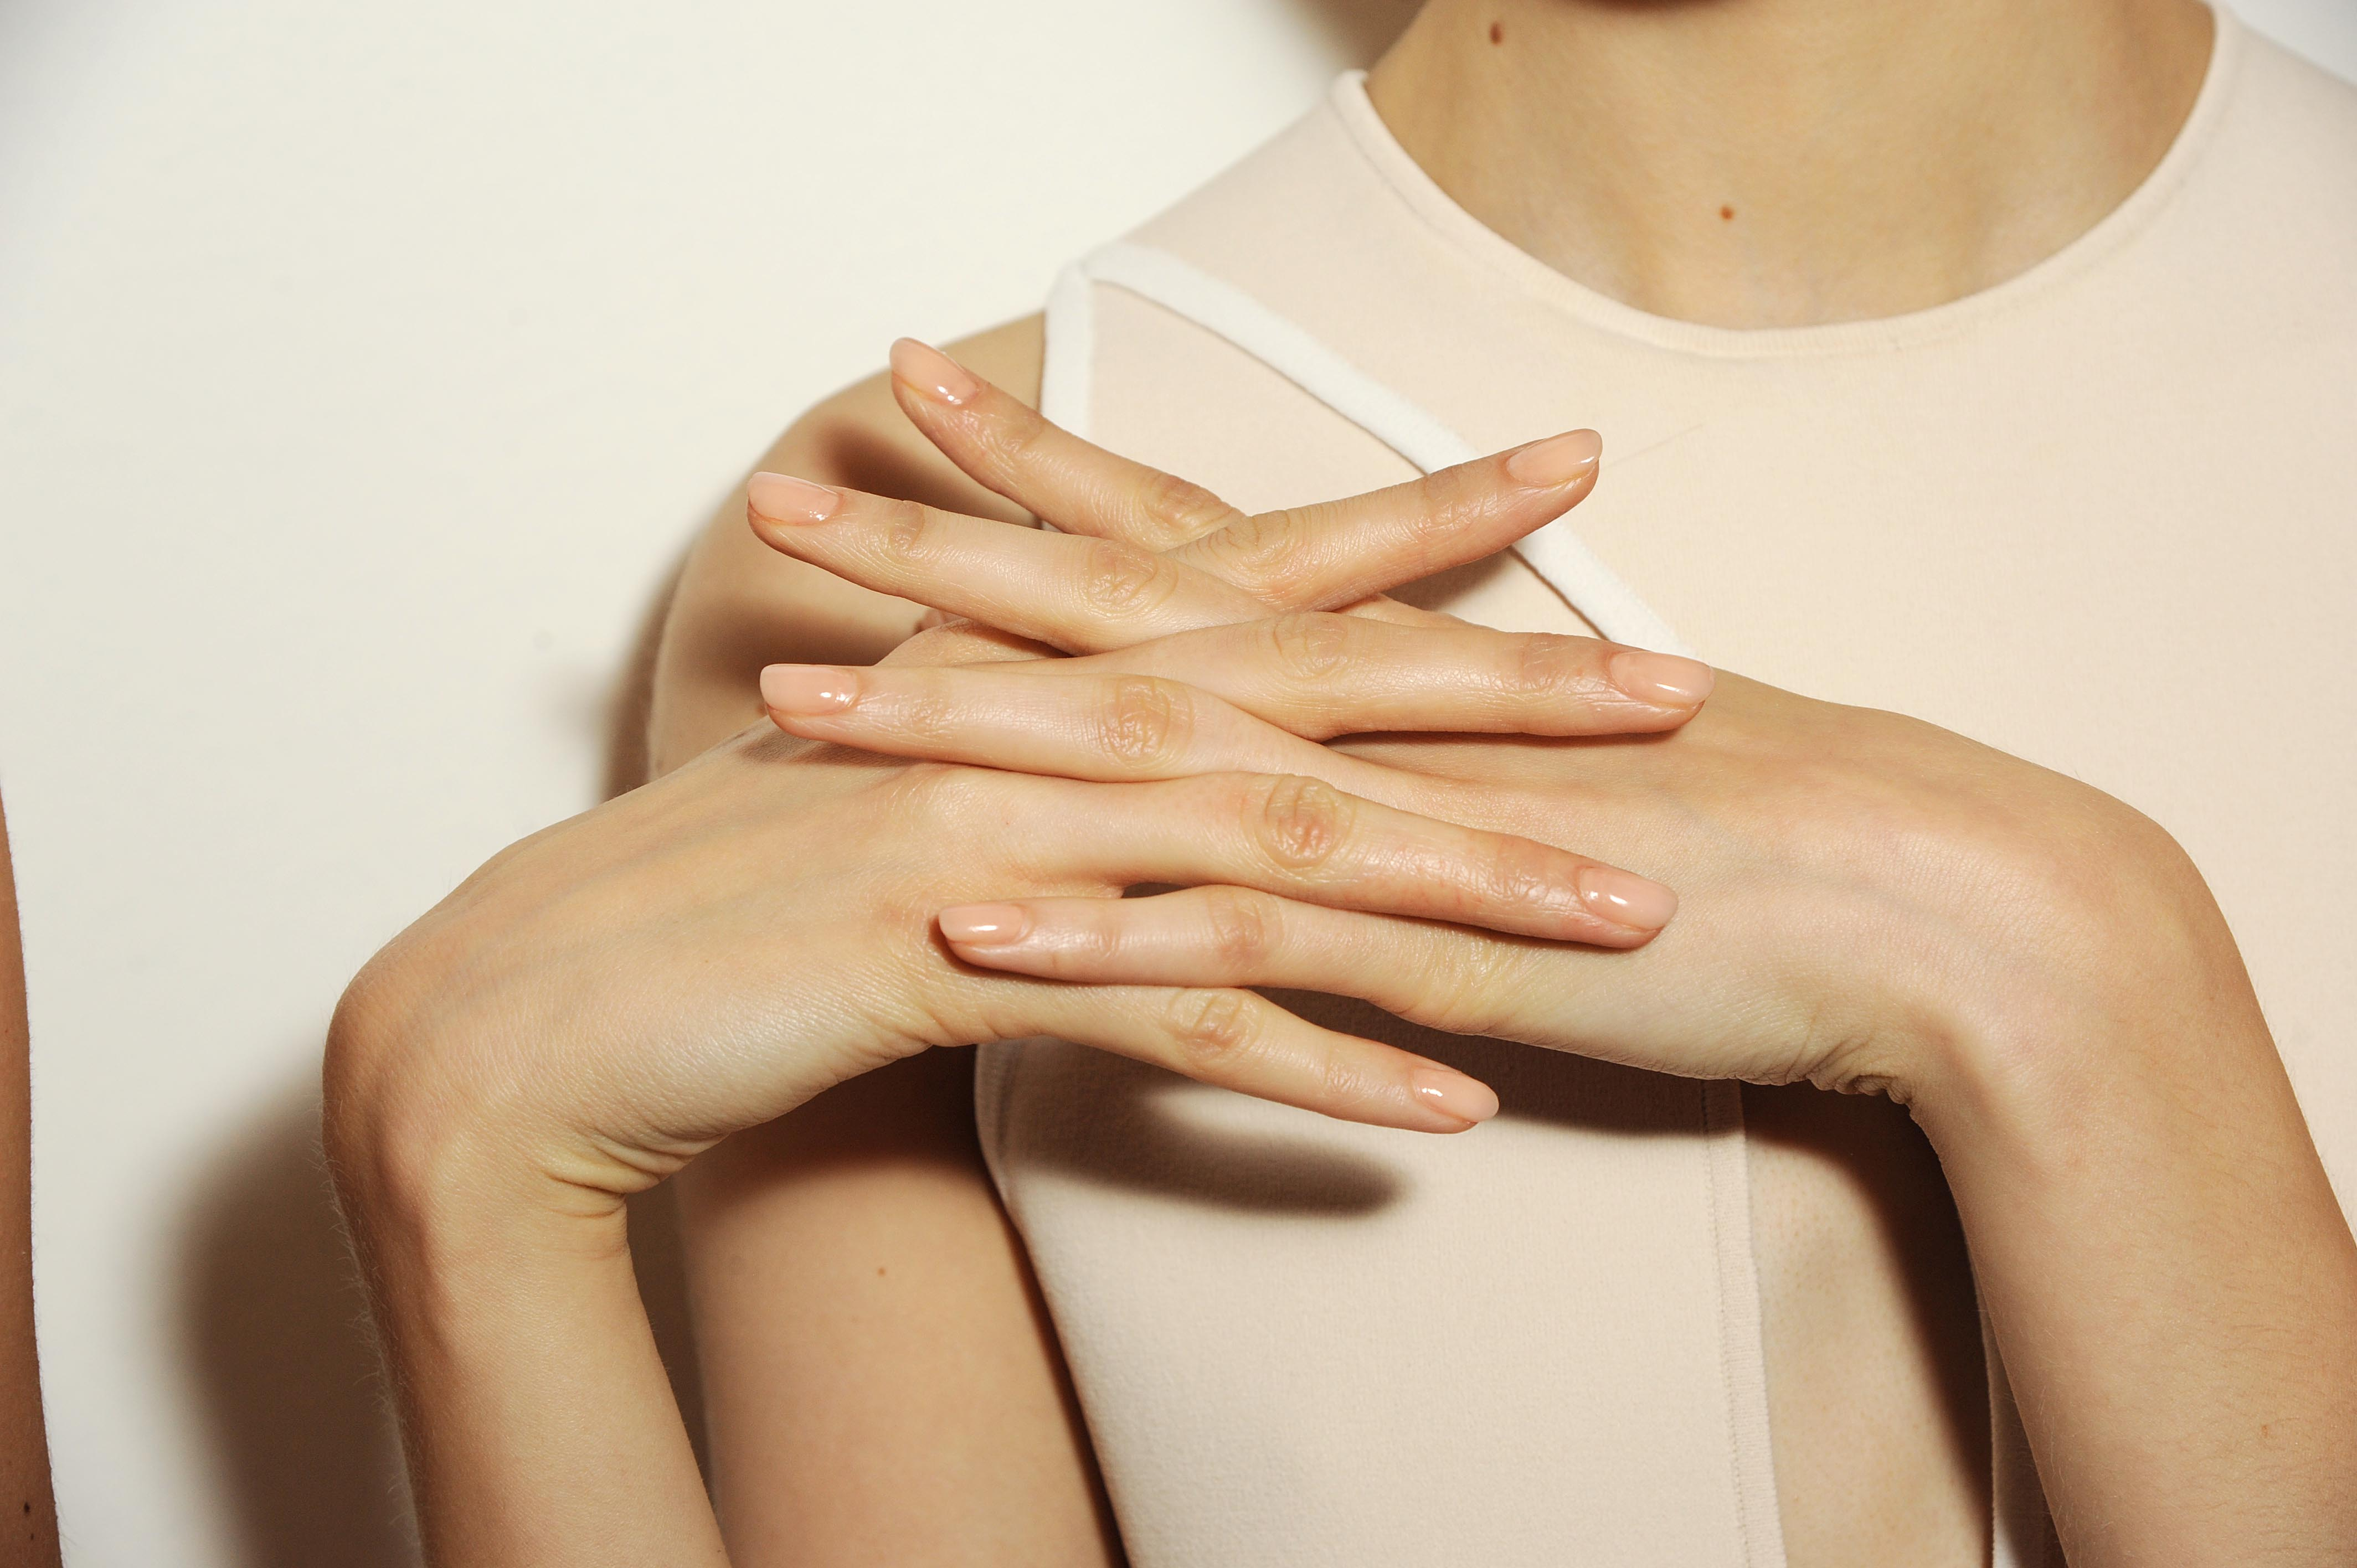 NYFW: Nails by butter LONDON on the Louise Goldin Runway   more.com